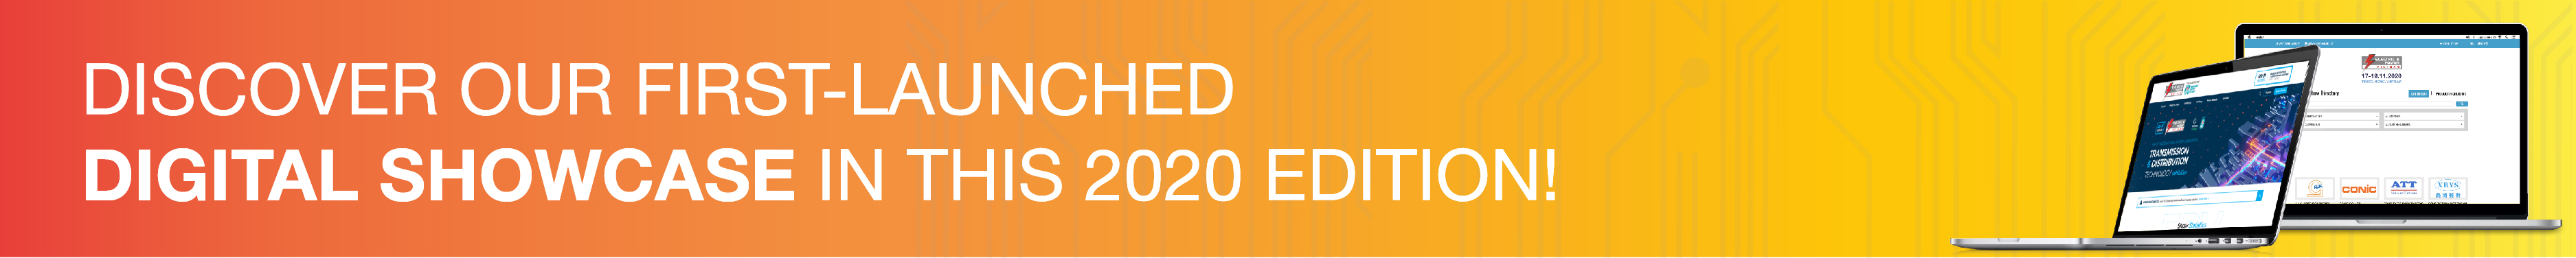 Discover our first-launched Digital Showcase in this 2020 edition!